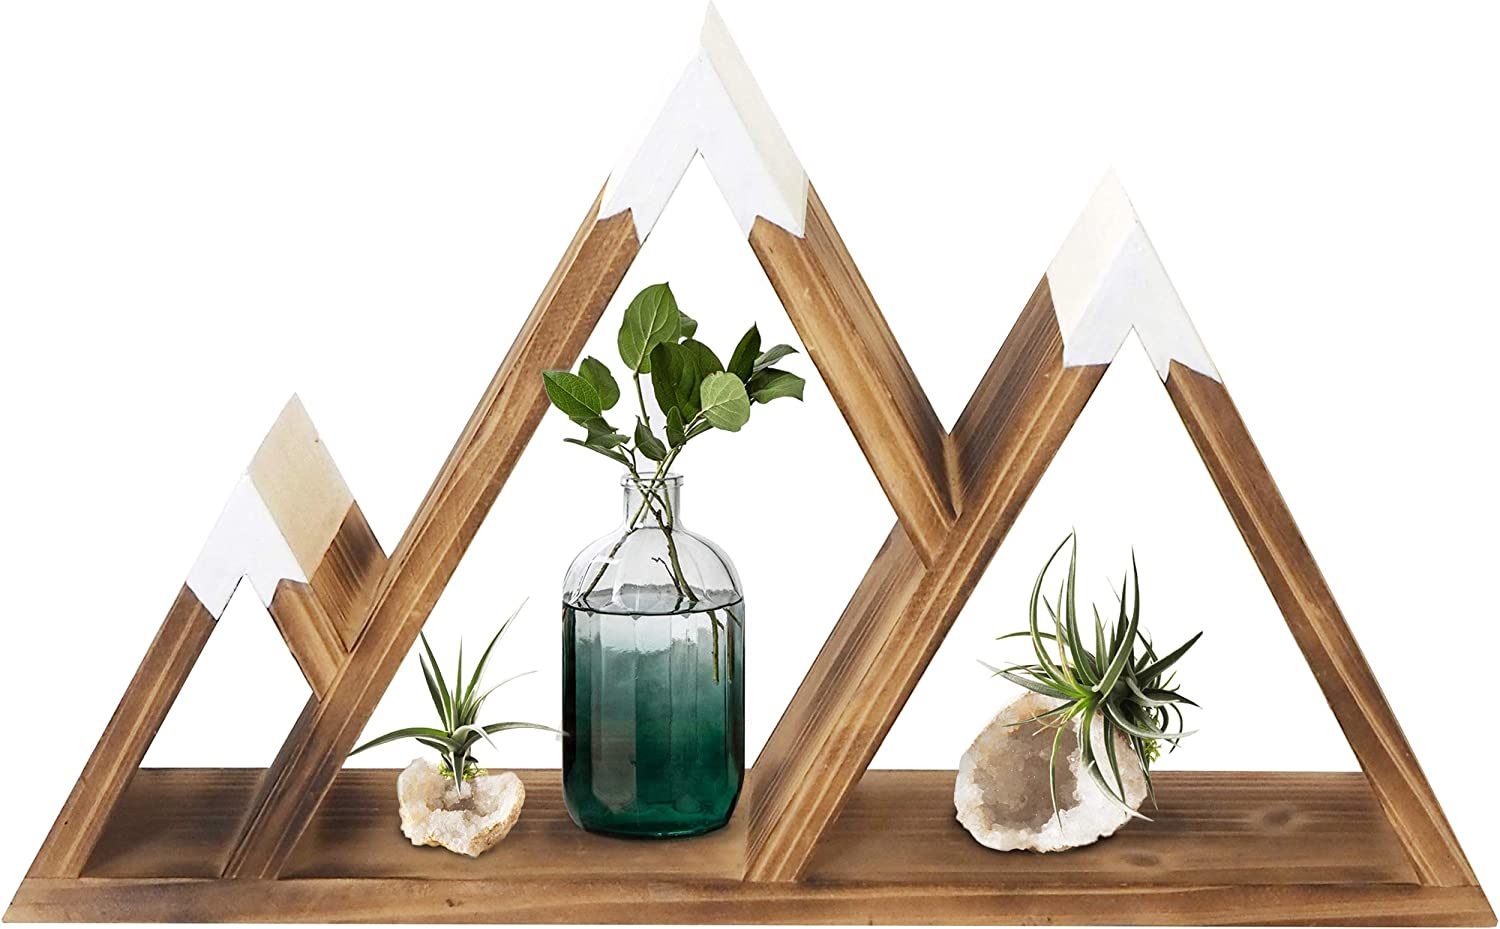 Gibbous Nimbus Wooden Mountain Shelf - Mountain Wall Decor for Nursery Wall Decor - Wooden Crystal Display Shelf - Rustic Wood Triangle Hanging Shelves for Rustic Cabin Decor and Travel Decor